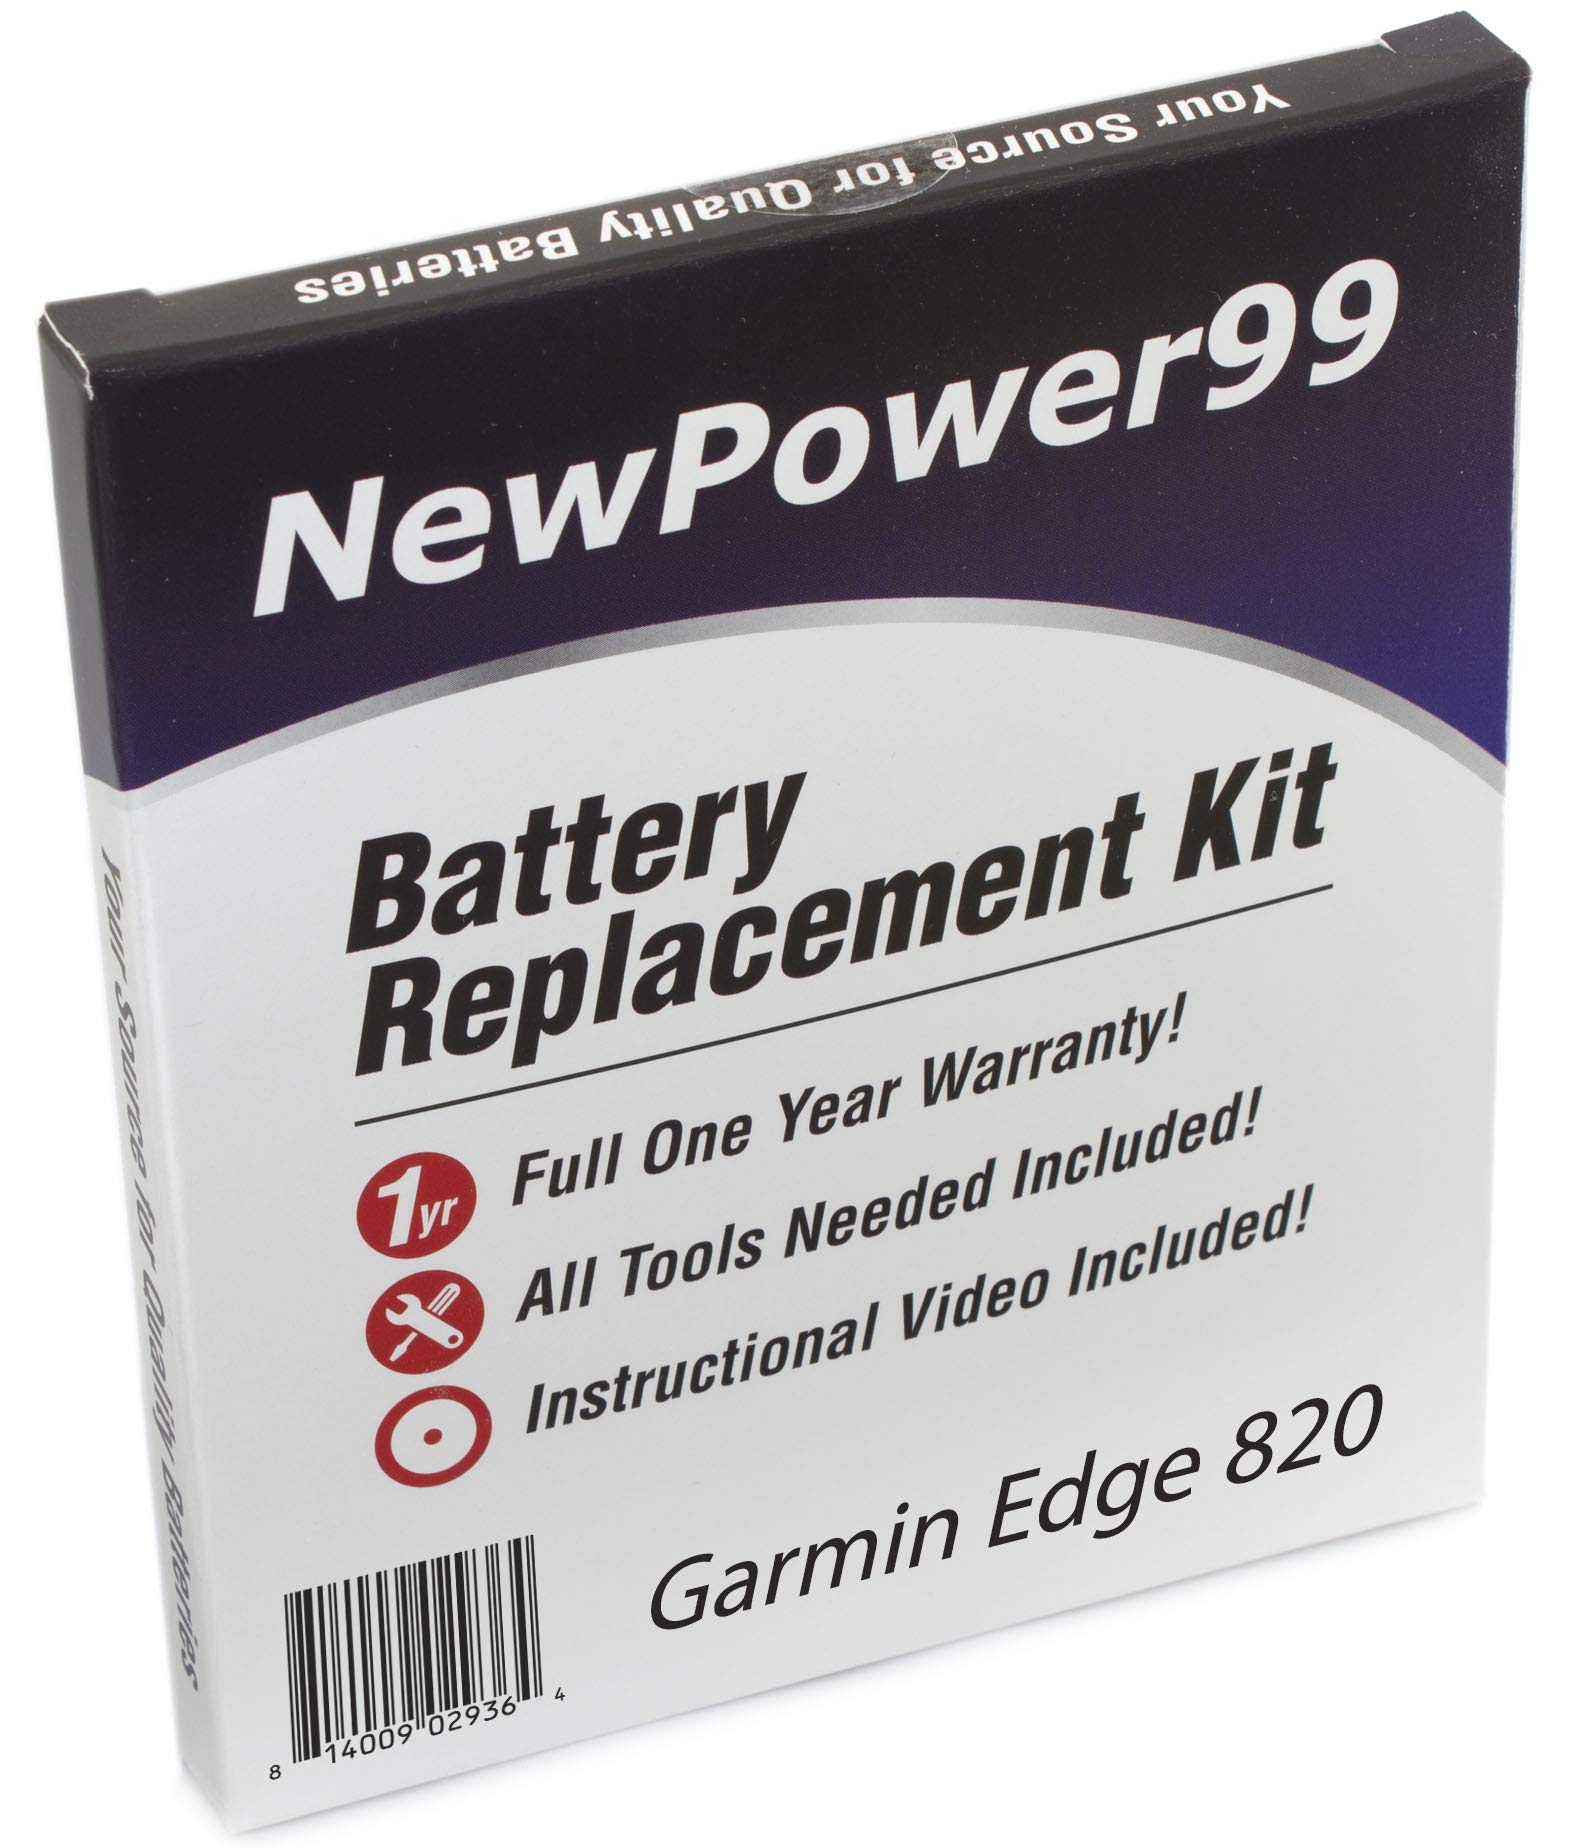 NewPower99 Battery Kit for Garmin Edge 820 with Video, Tools, and Extended Life Battery by NewPower99